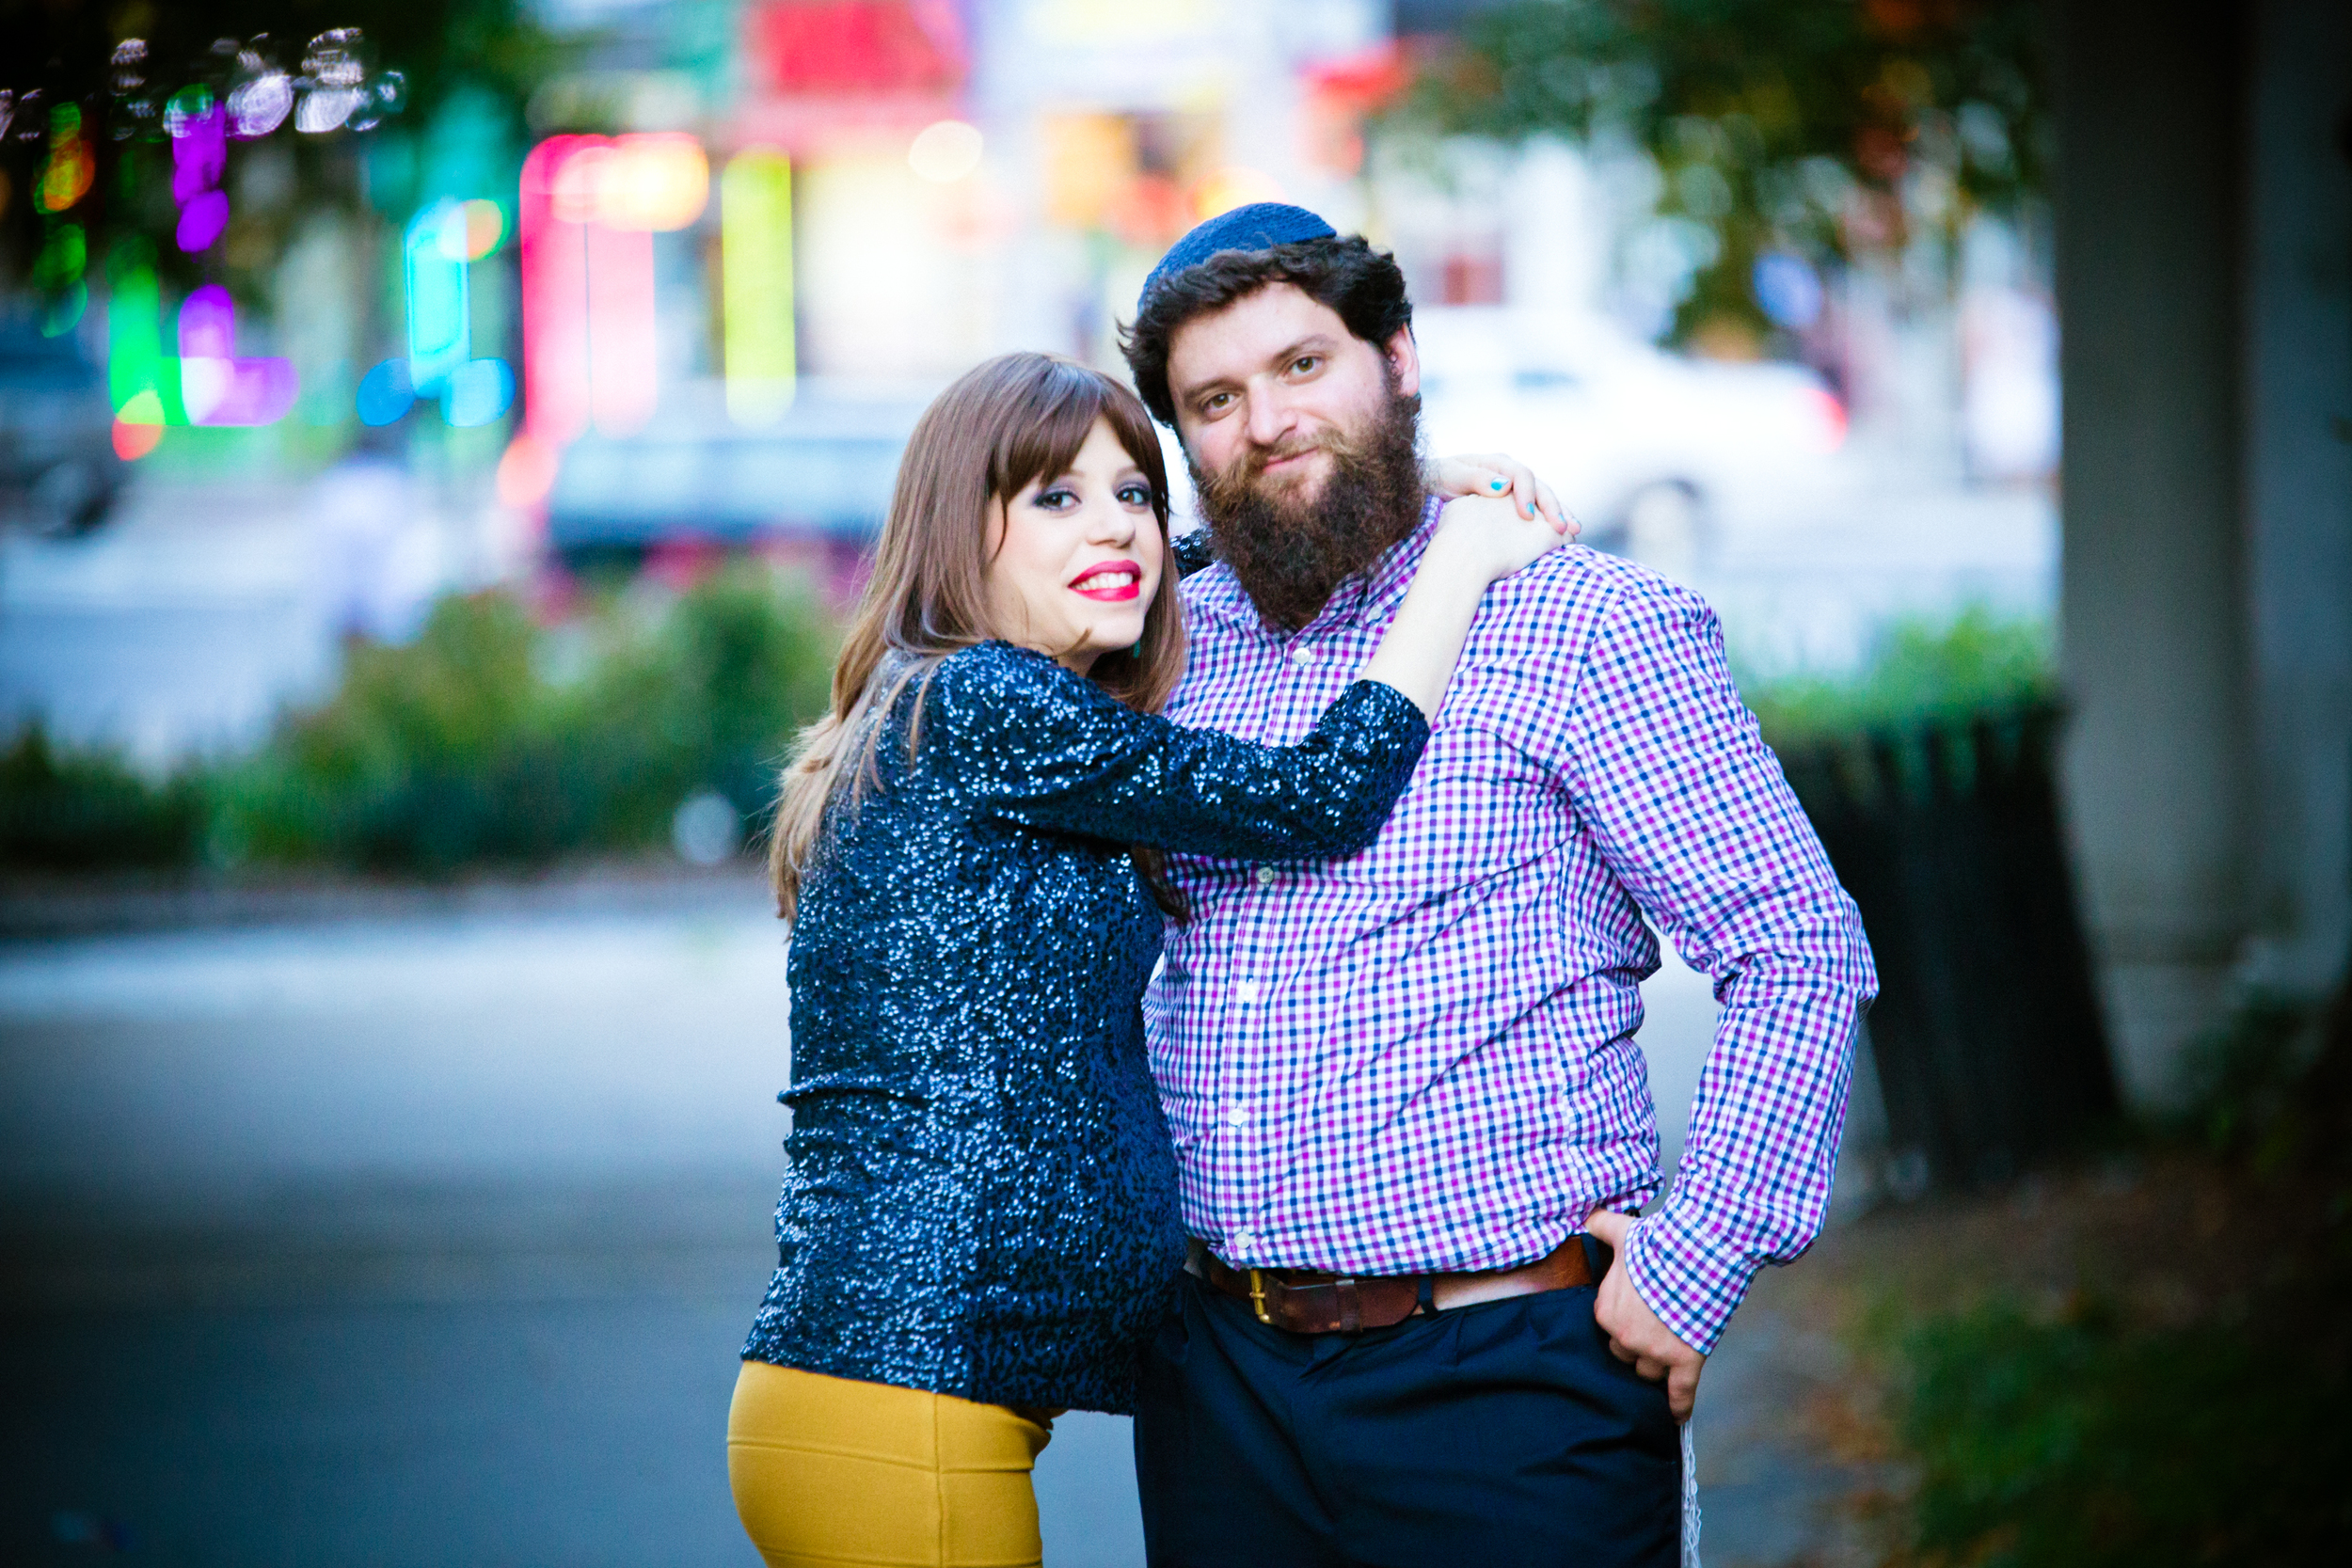 Photoshoot Yossef & Chaya | Maternity | Piha studio photography, new york, events, -9.jpg